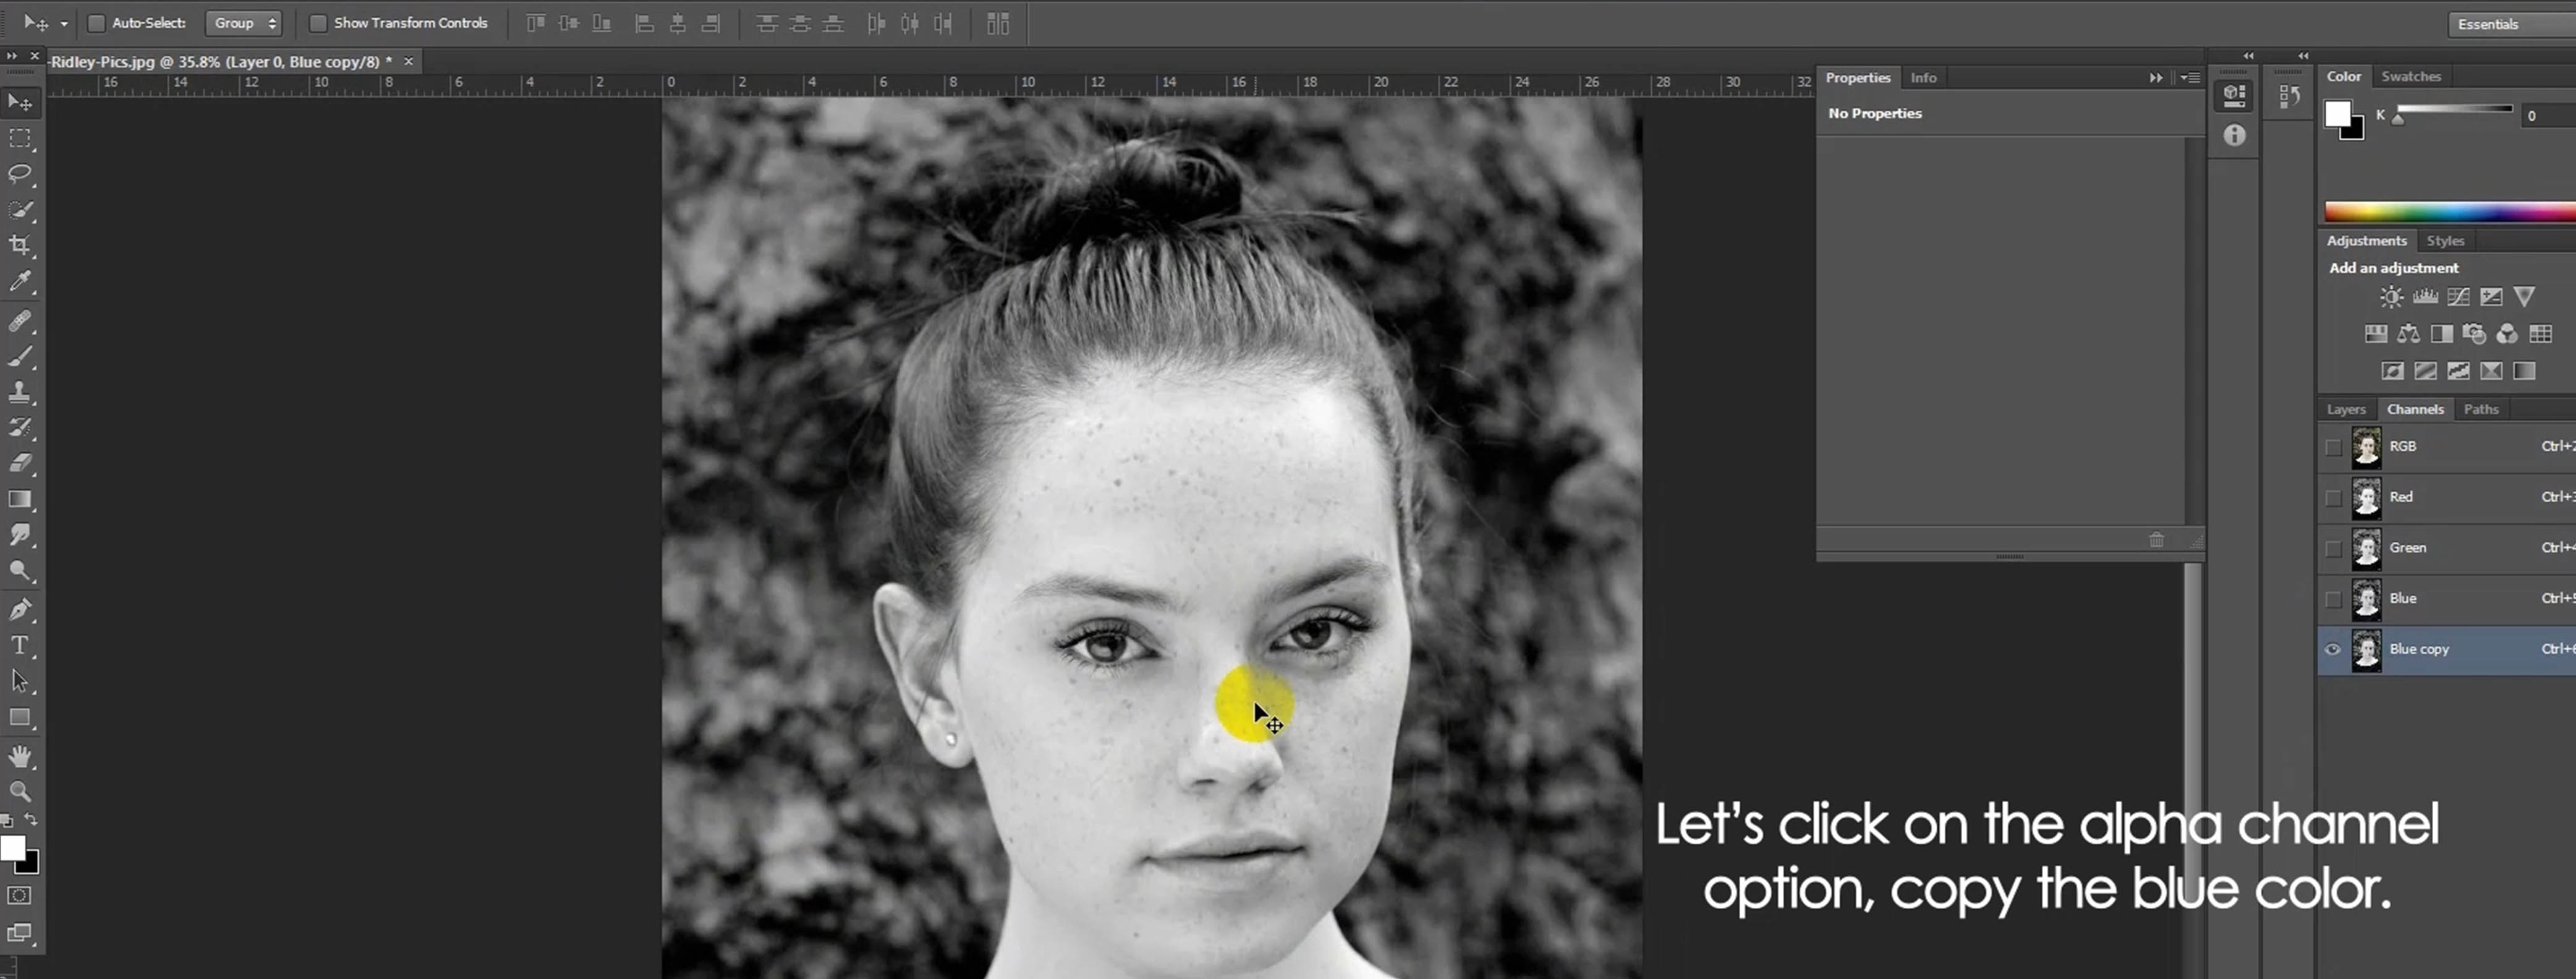 Portrait retouching tutorial in photoshop cs6 color experts ill try to remove these spots and make it more gorgeous by portrait retouching method applying many photoshop tools and options baditri Choice Image